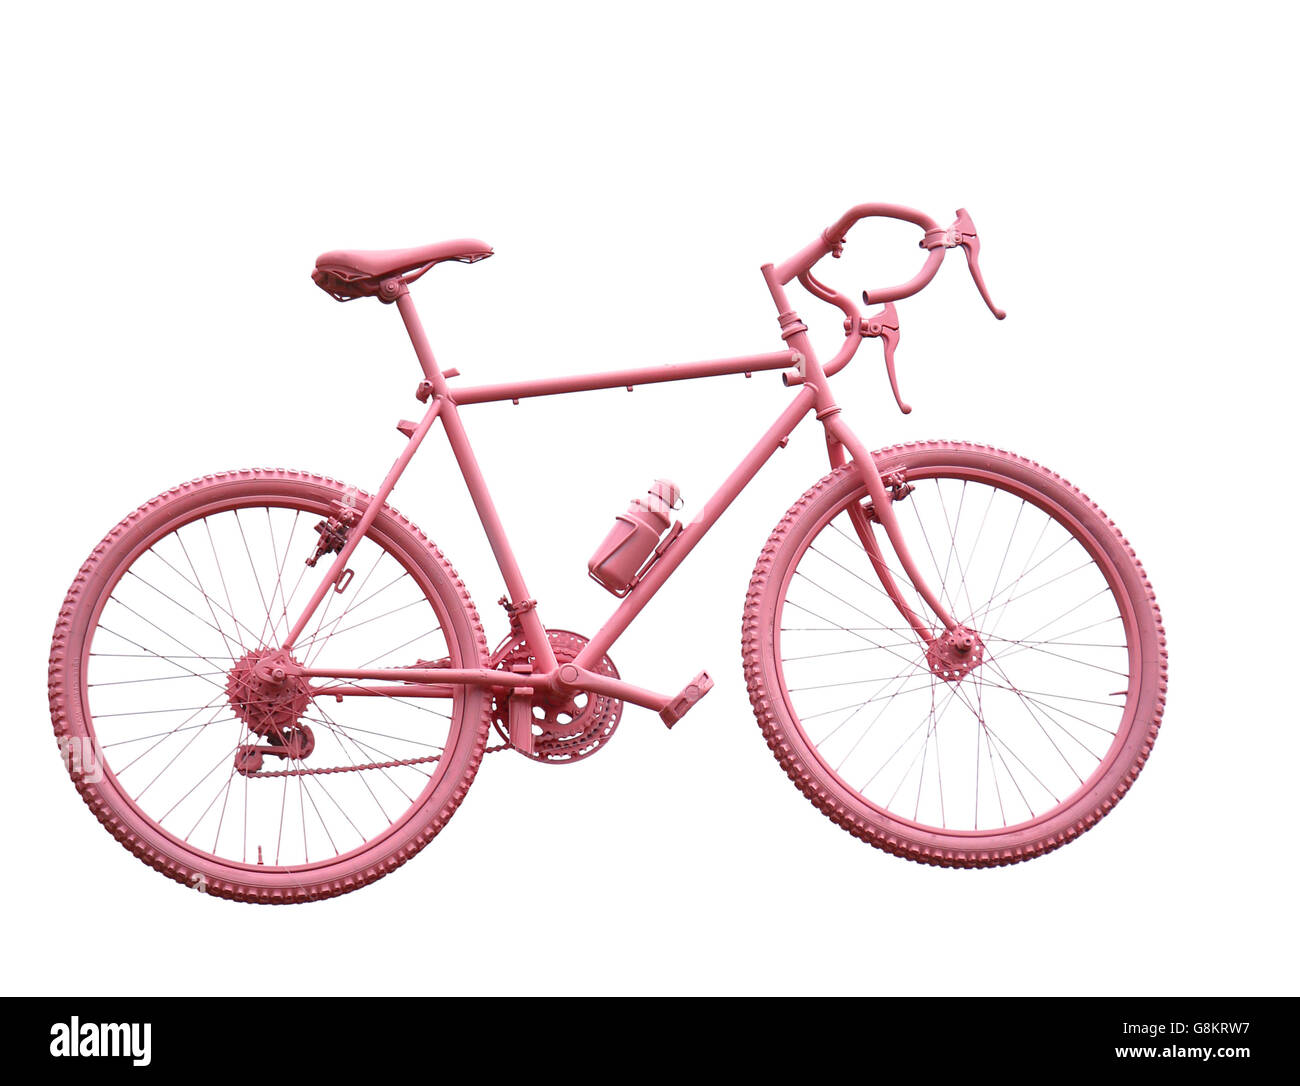 sport bike all pink on white background - Stock Image